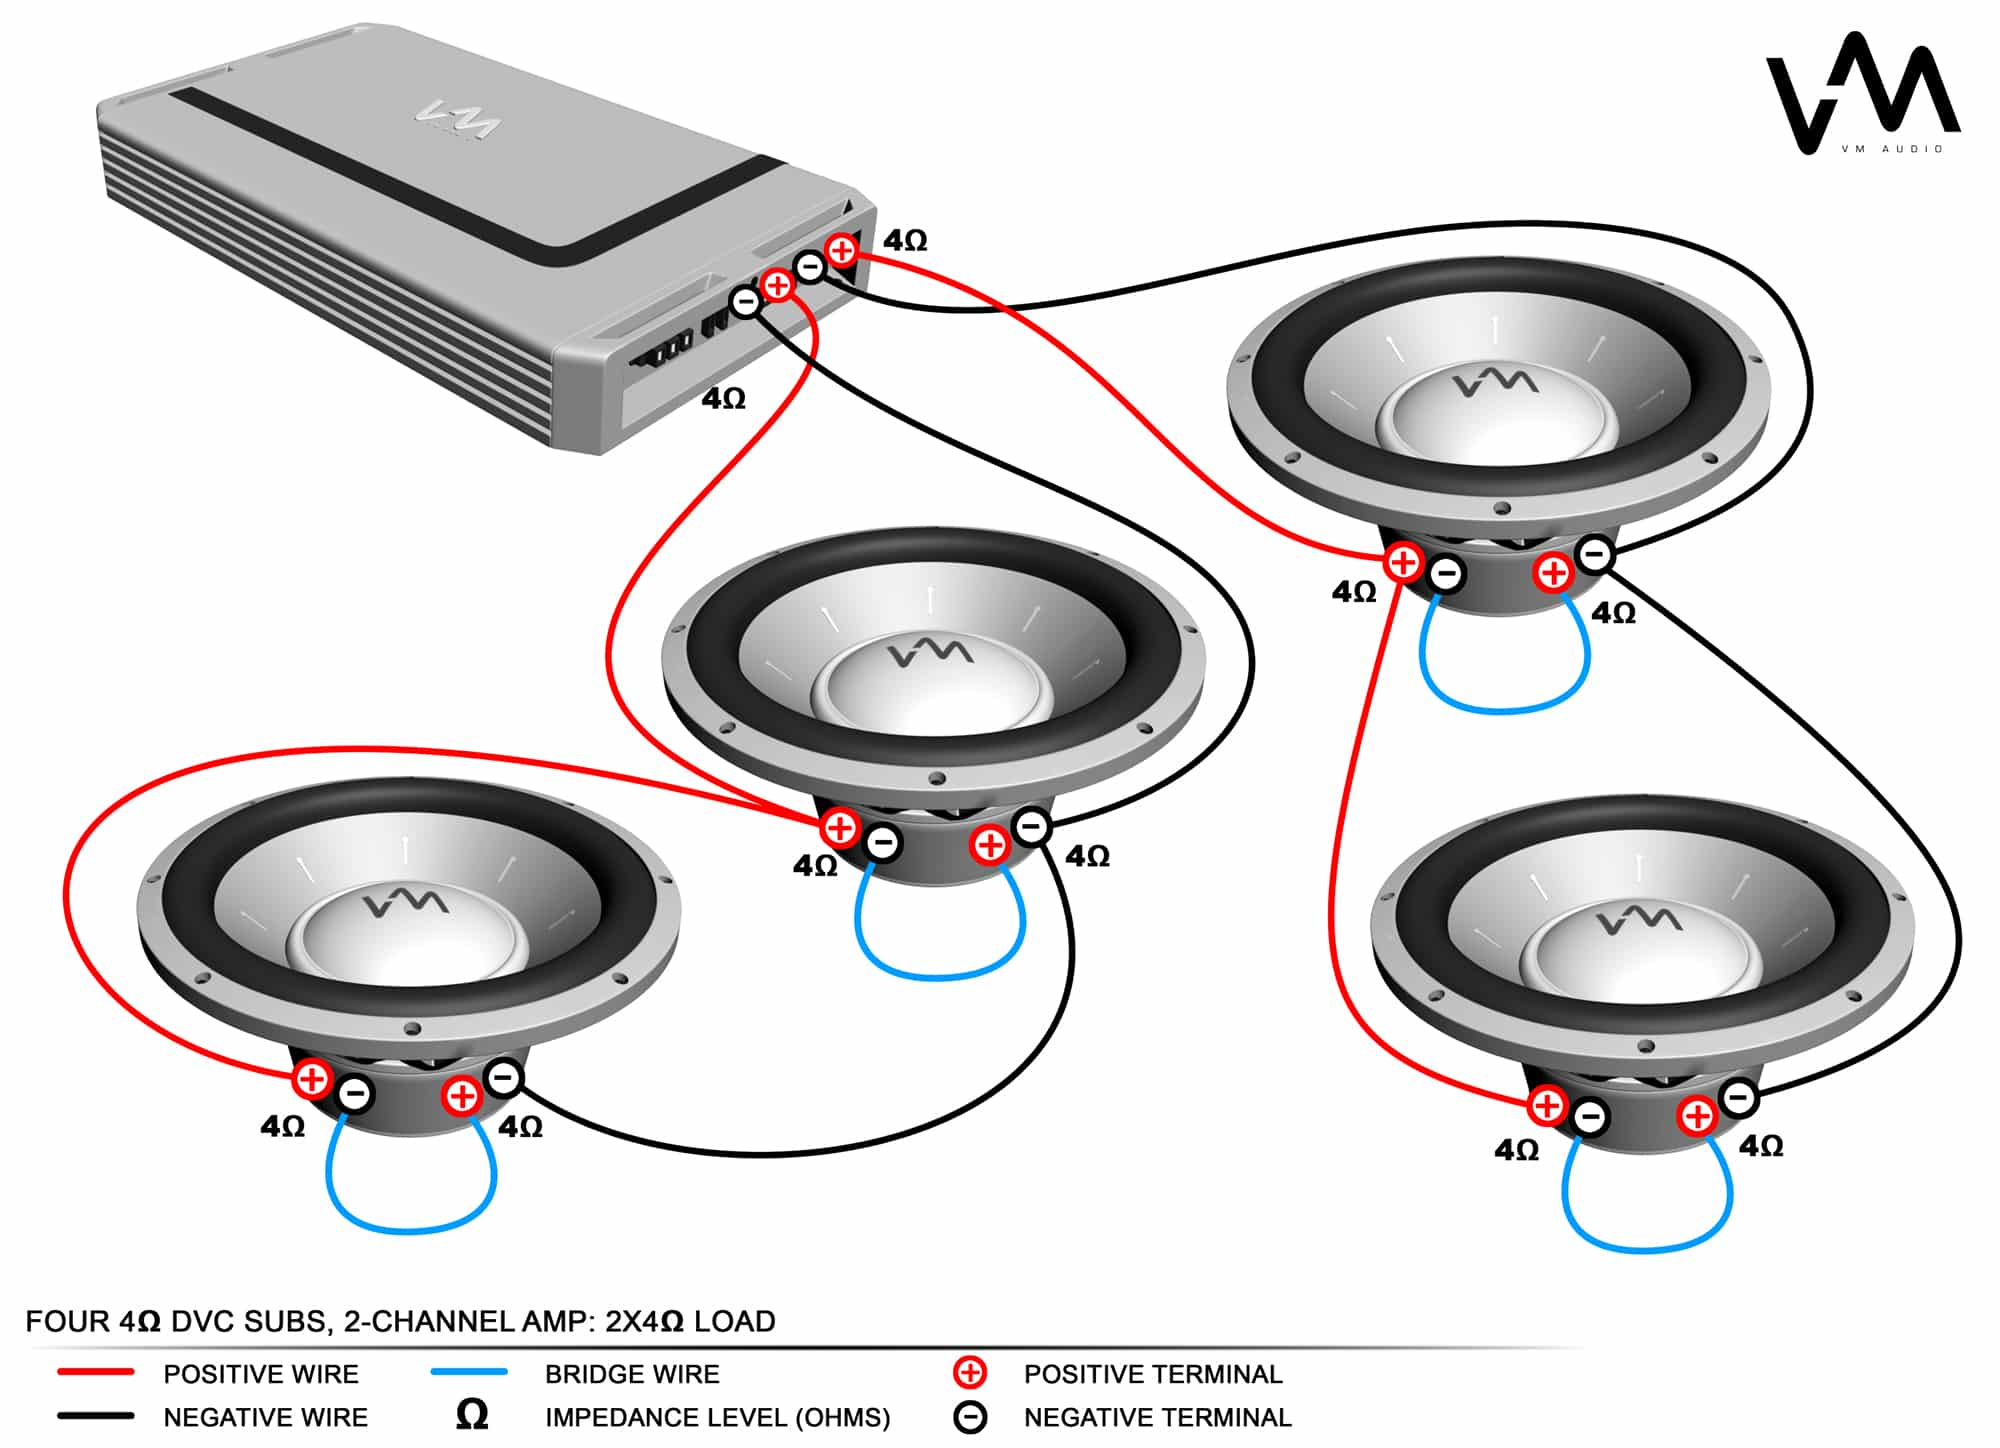 How to Connect Four Speakers To A 2-Channel Amp -  Channel Amp To Car Stereo Wiring Diagram on car subwoofer wiring kit, wiring 6 speakers to 4 channel amp, car subwoofer amp wiring diagram,